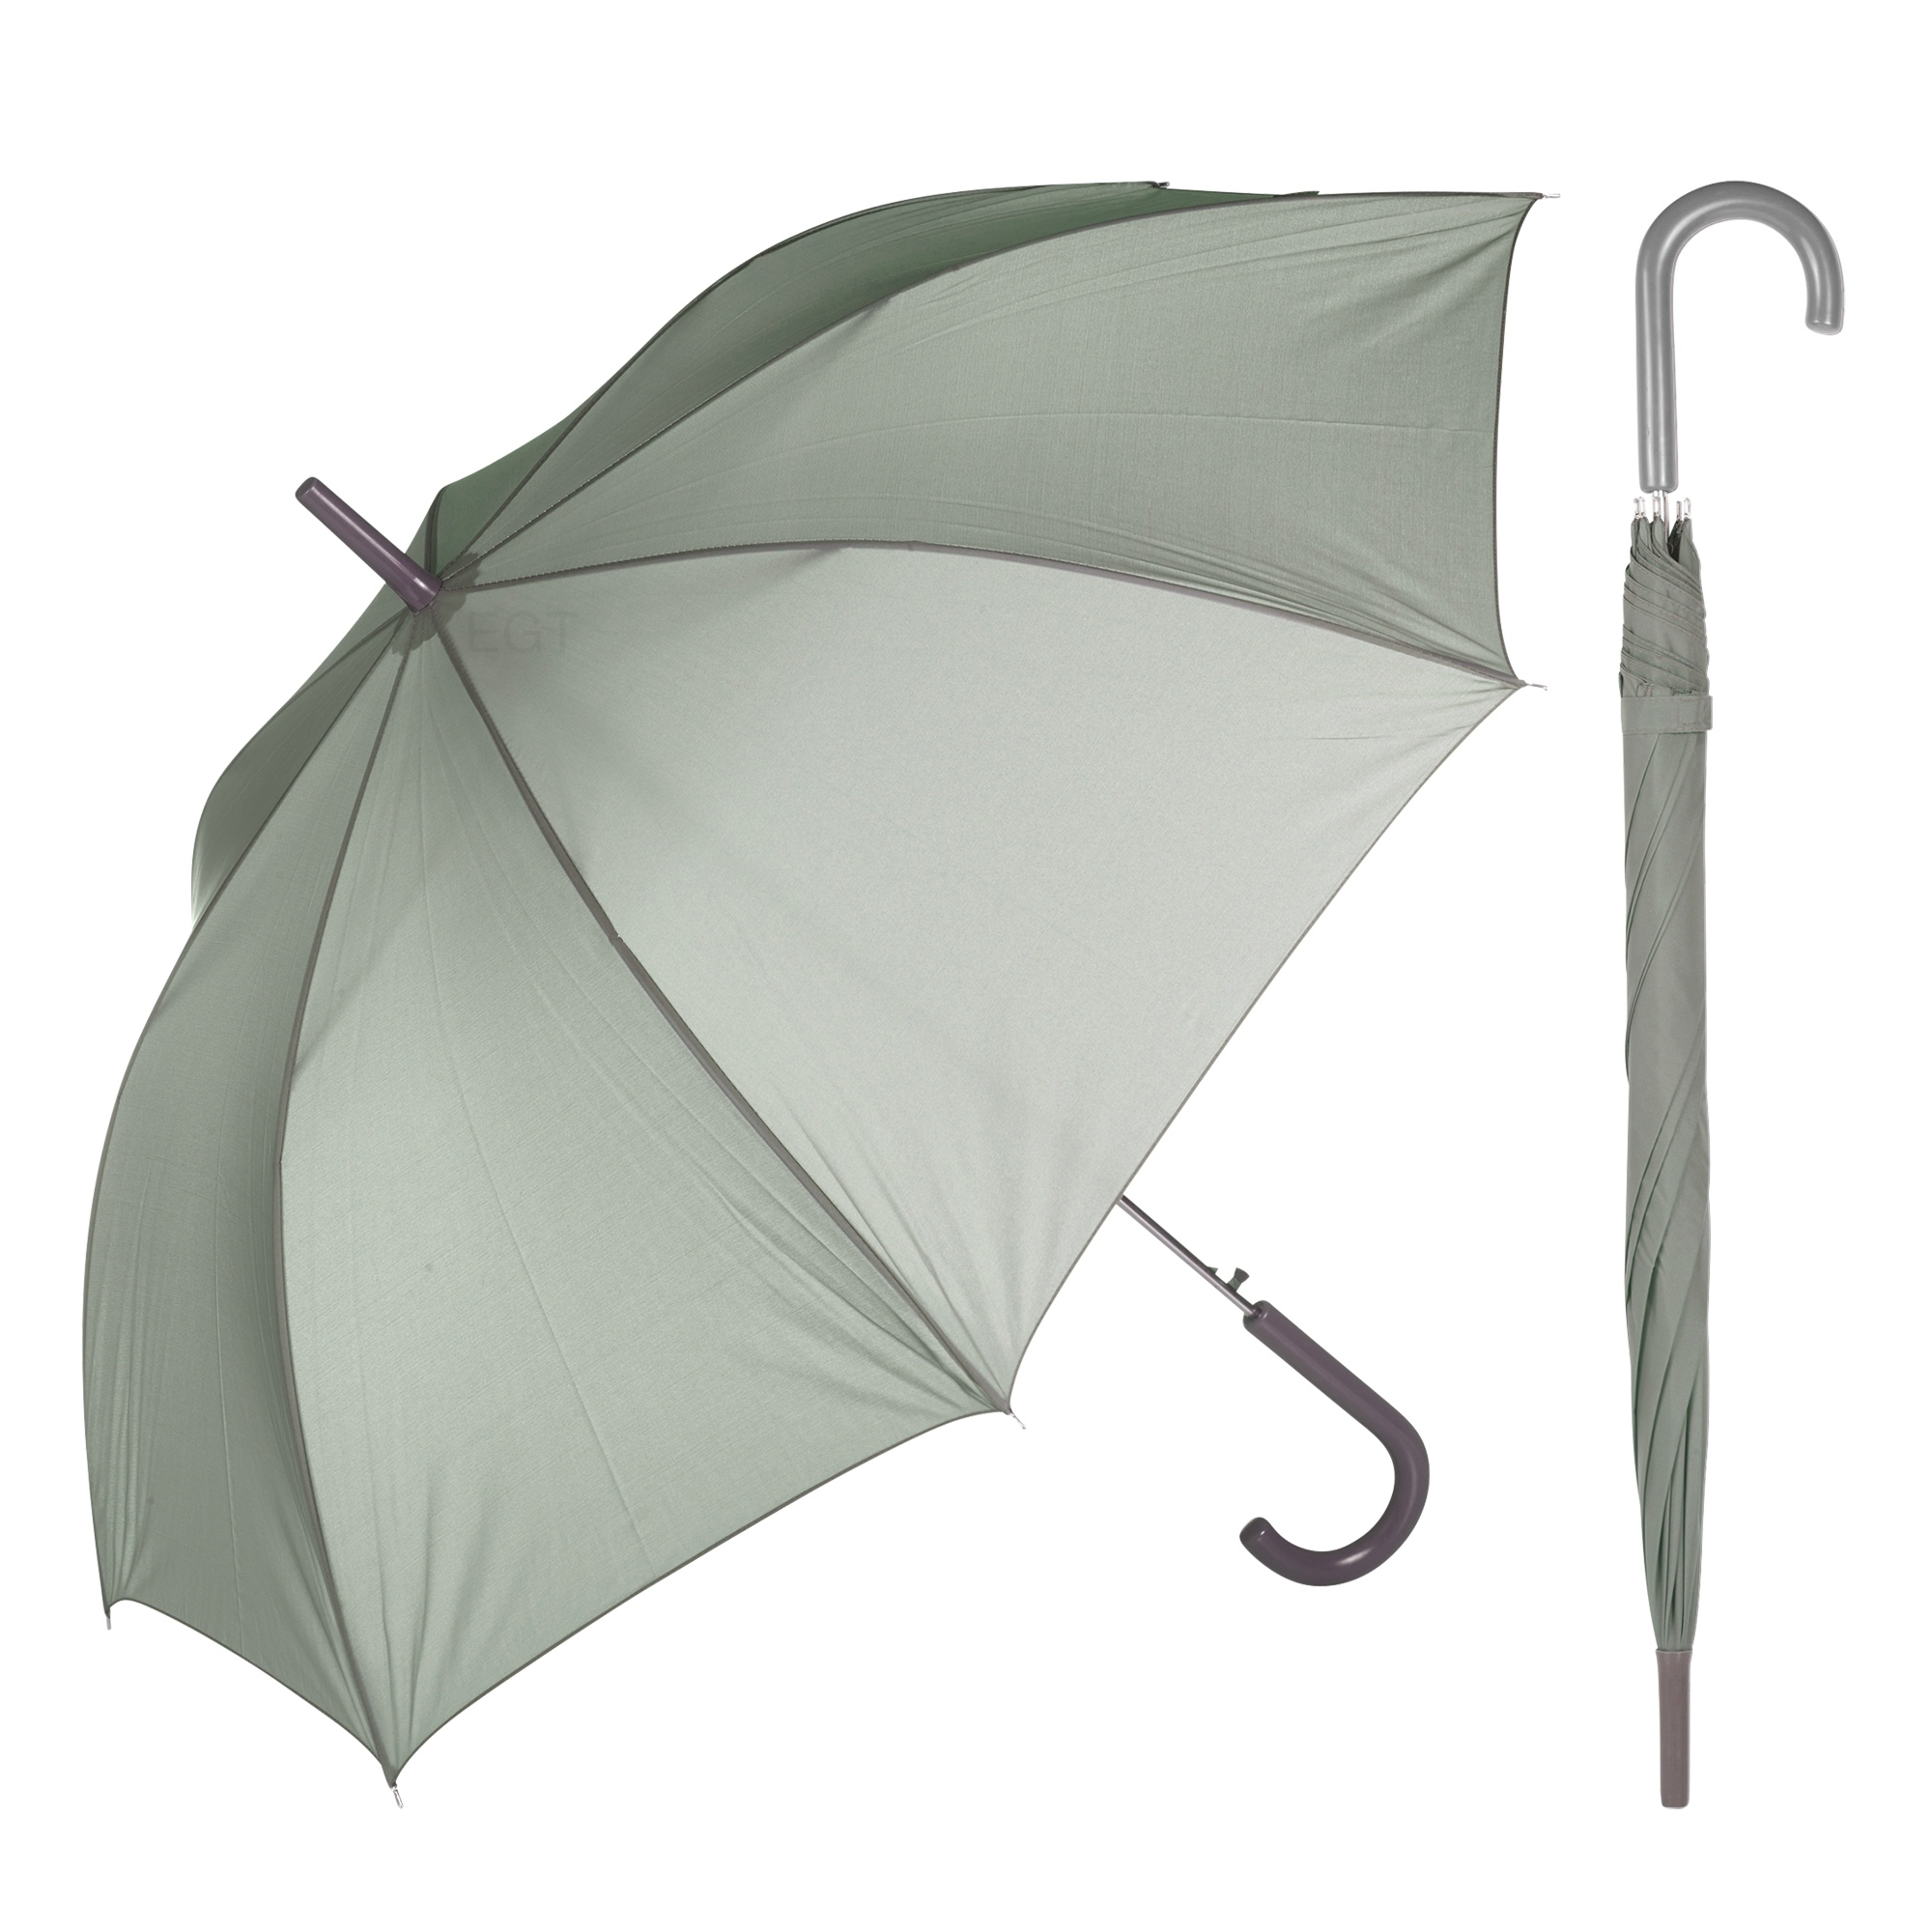 Large Wooden Crook Handle Automatic Opening Umbrella Brolly Walking Stick Rain